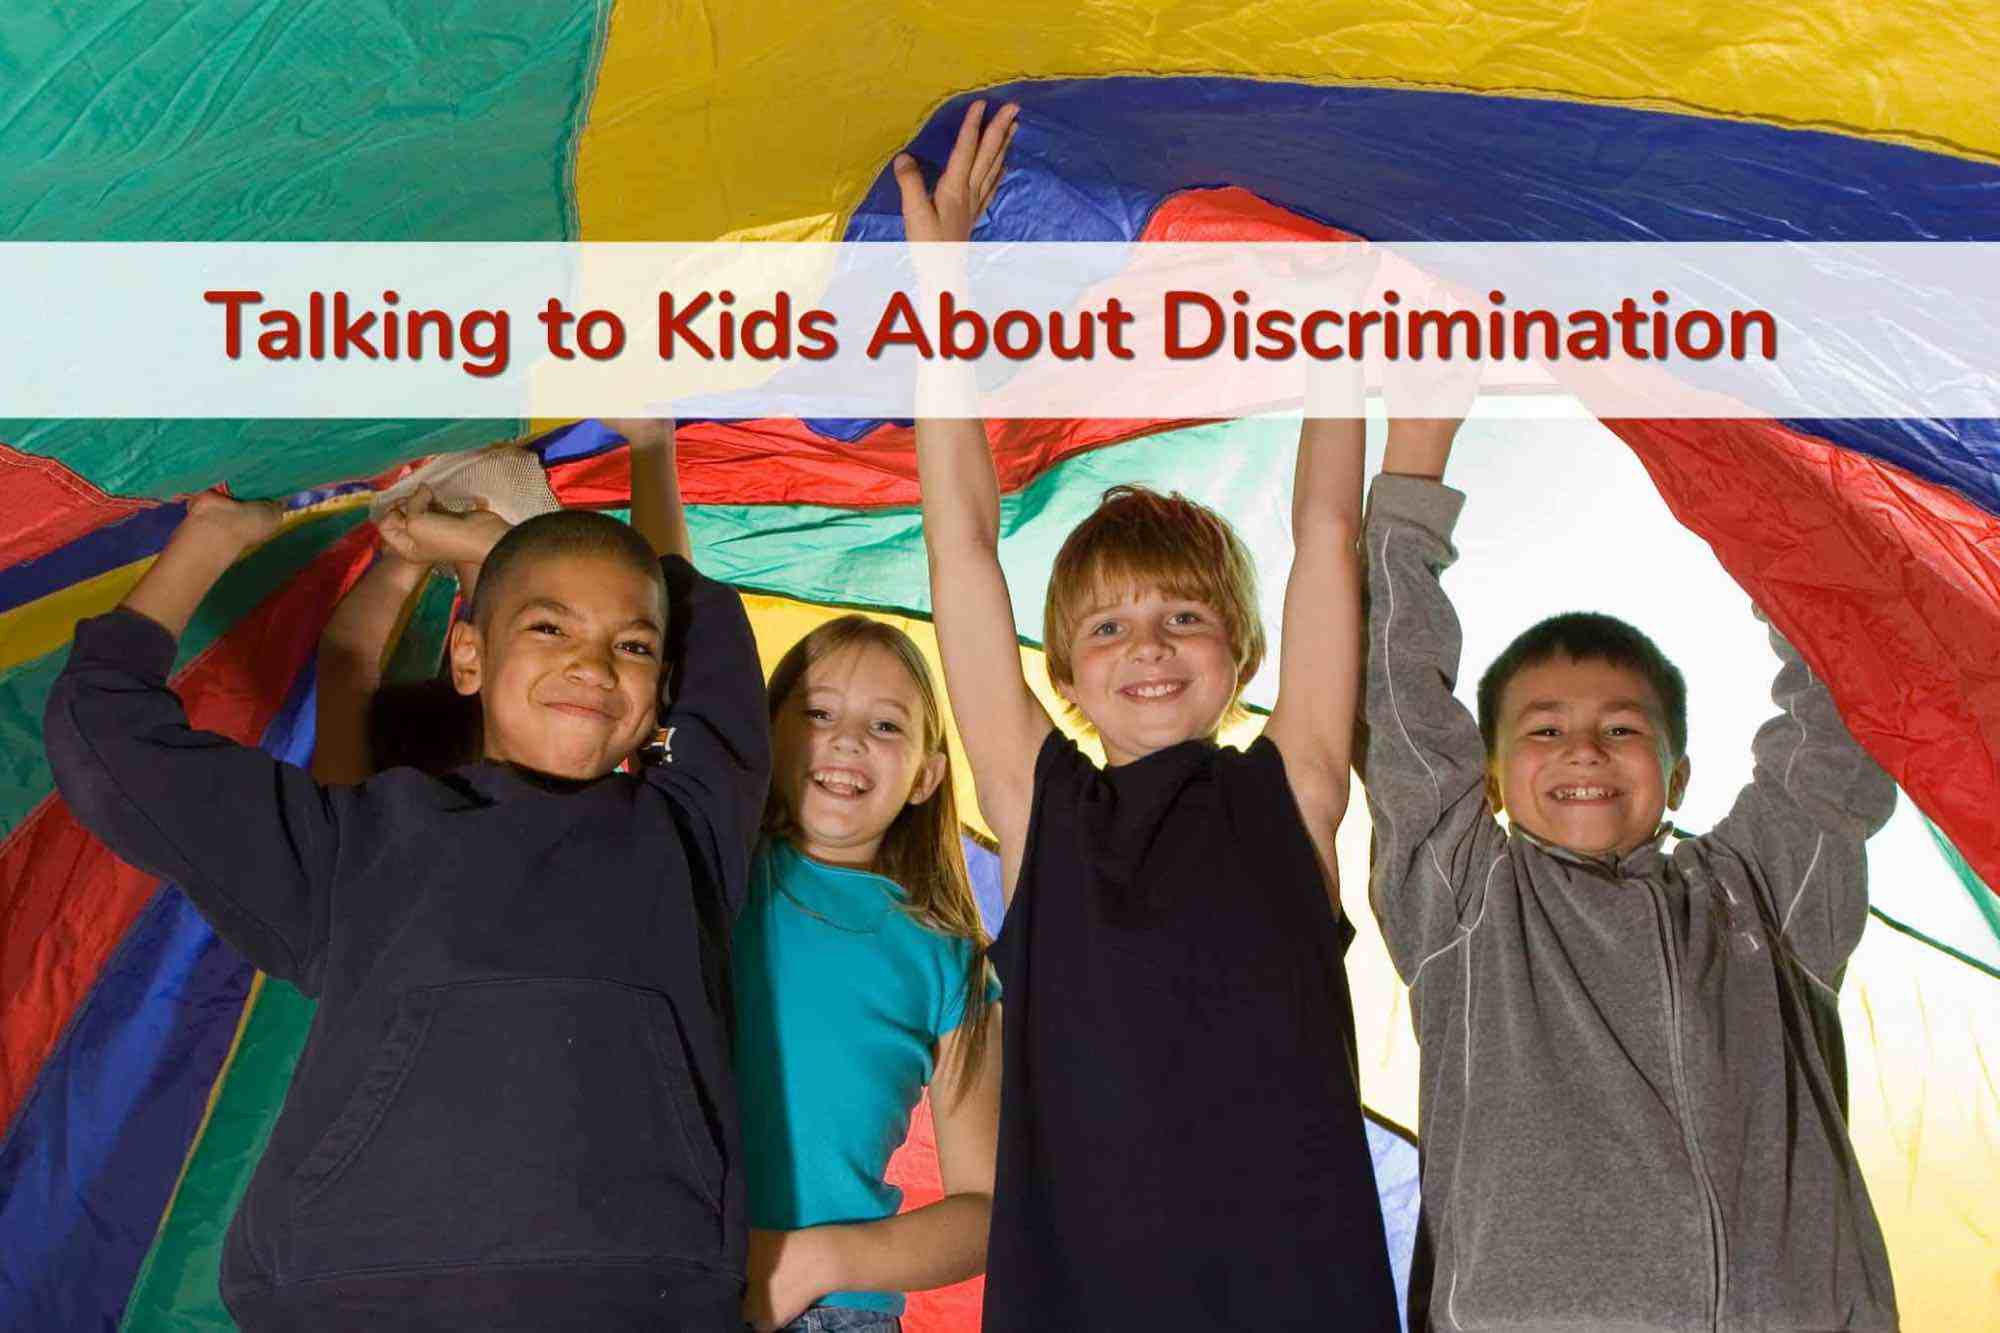 Diverse group of schoolkids holding up multi-colored parachute